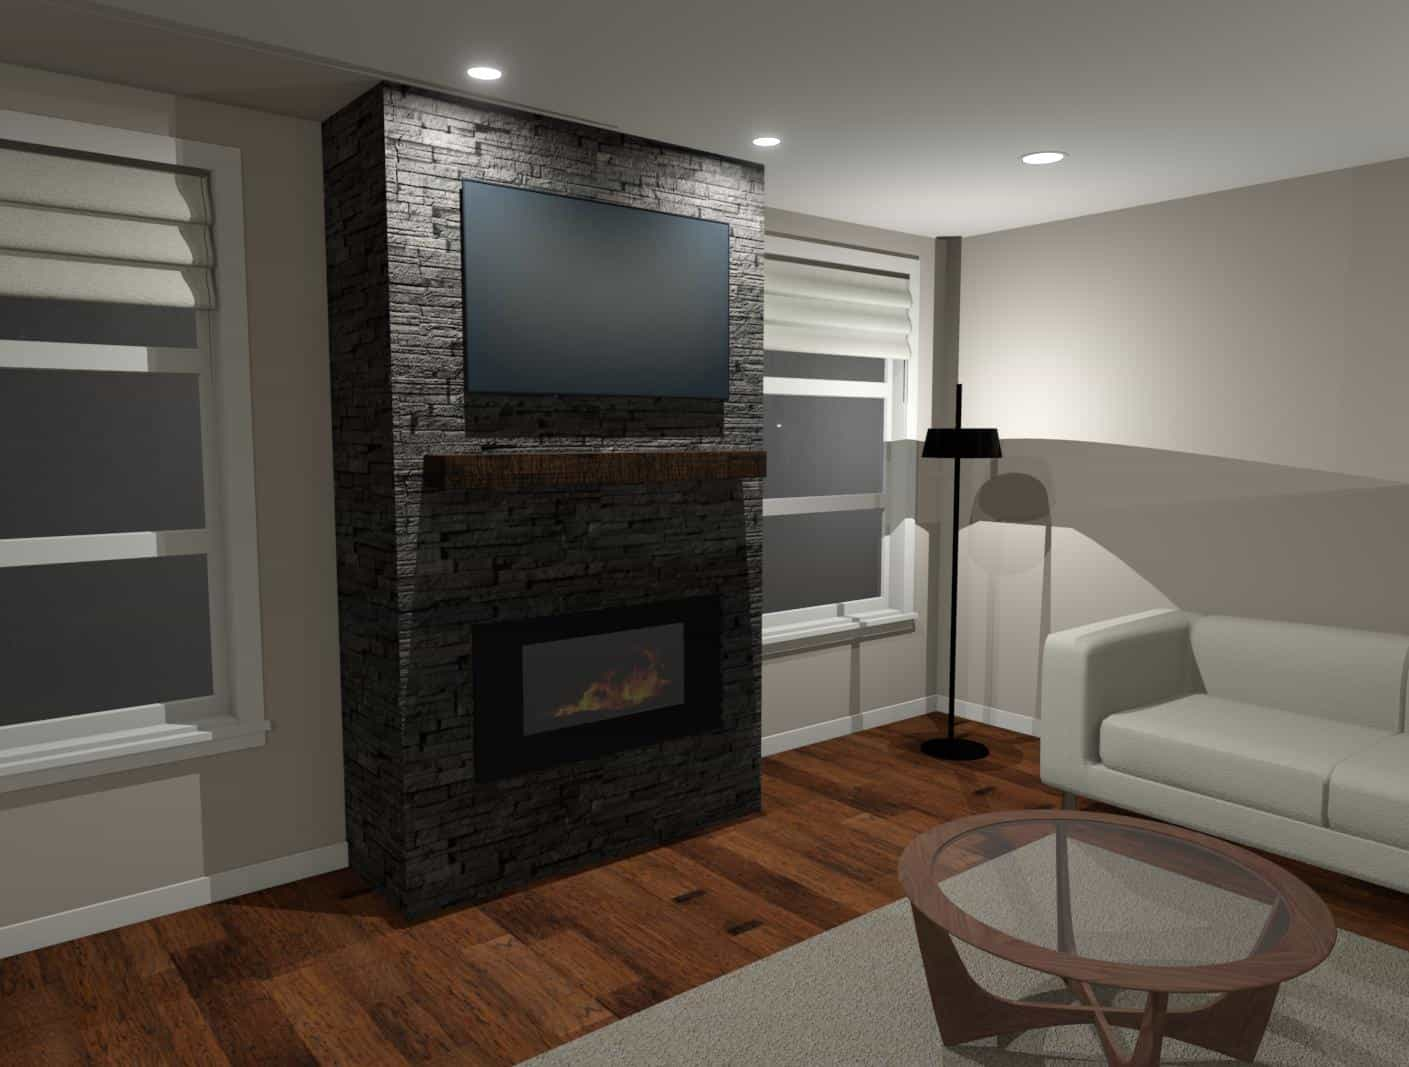 3D Model of a Fireplace - Designers Northwest